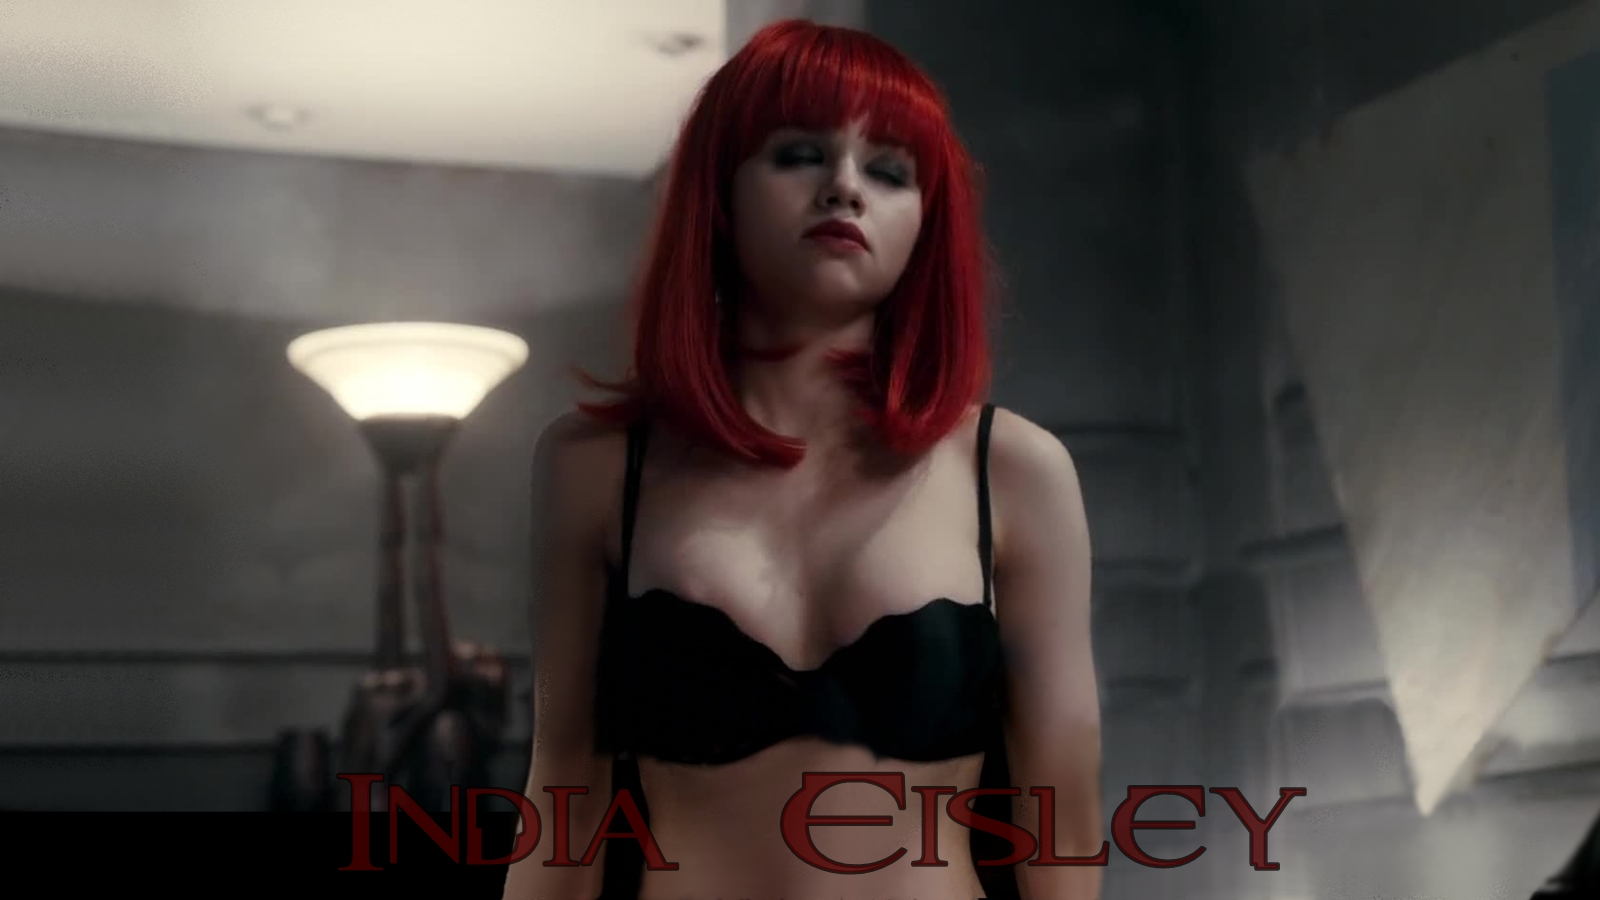 india eisley hot scene sex